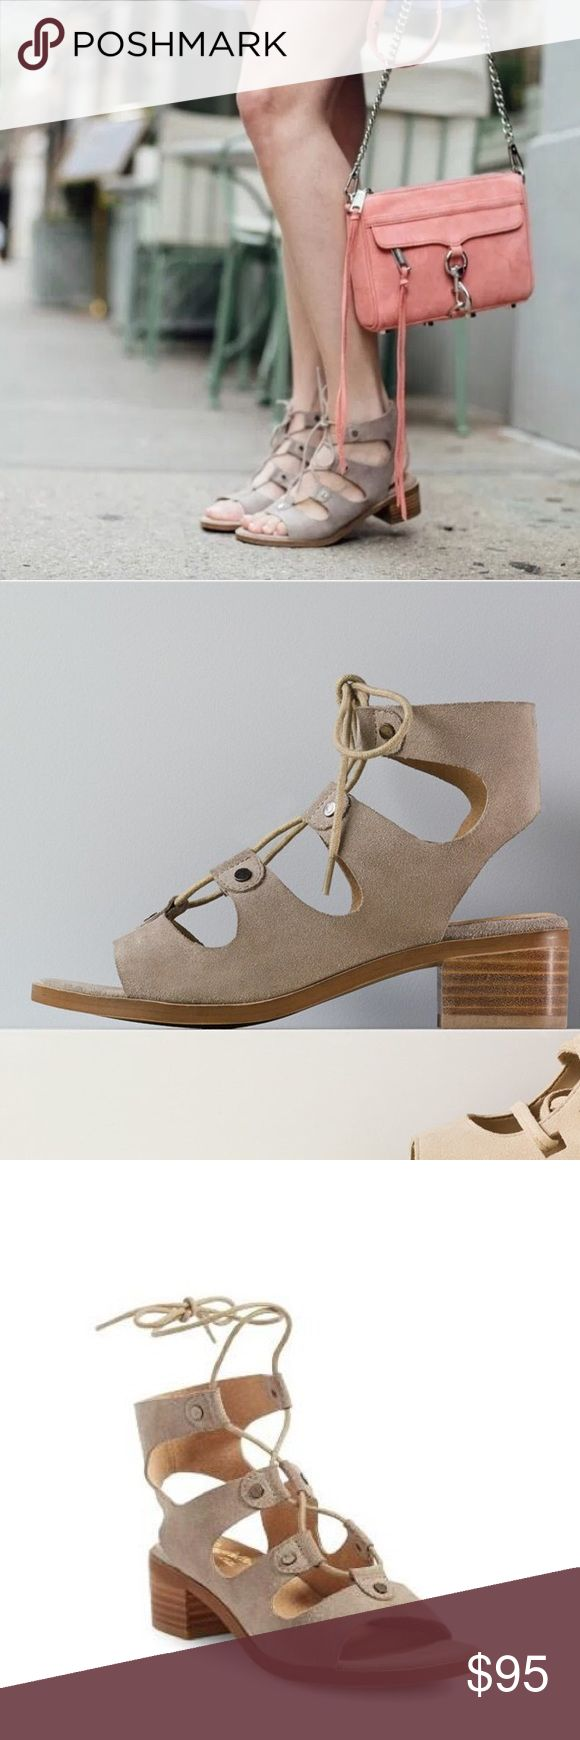 """Gladiator Lace Up Wrap Around Low Heel Sandal Gladiator Lace Up Low Heel Sandals. This trend-right gladiator sandal is styled with slim lacing, a cutout counter and a chunky block heel. 1 3/4"""" heel  Lace-up style with wraparound ankle tie Cushioned insole Leather Suedette upper Tan Seychelles X Anthropologie Anthropologie Shoes Sandals"""